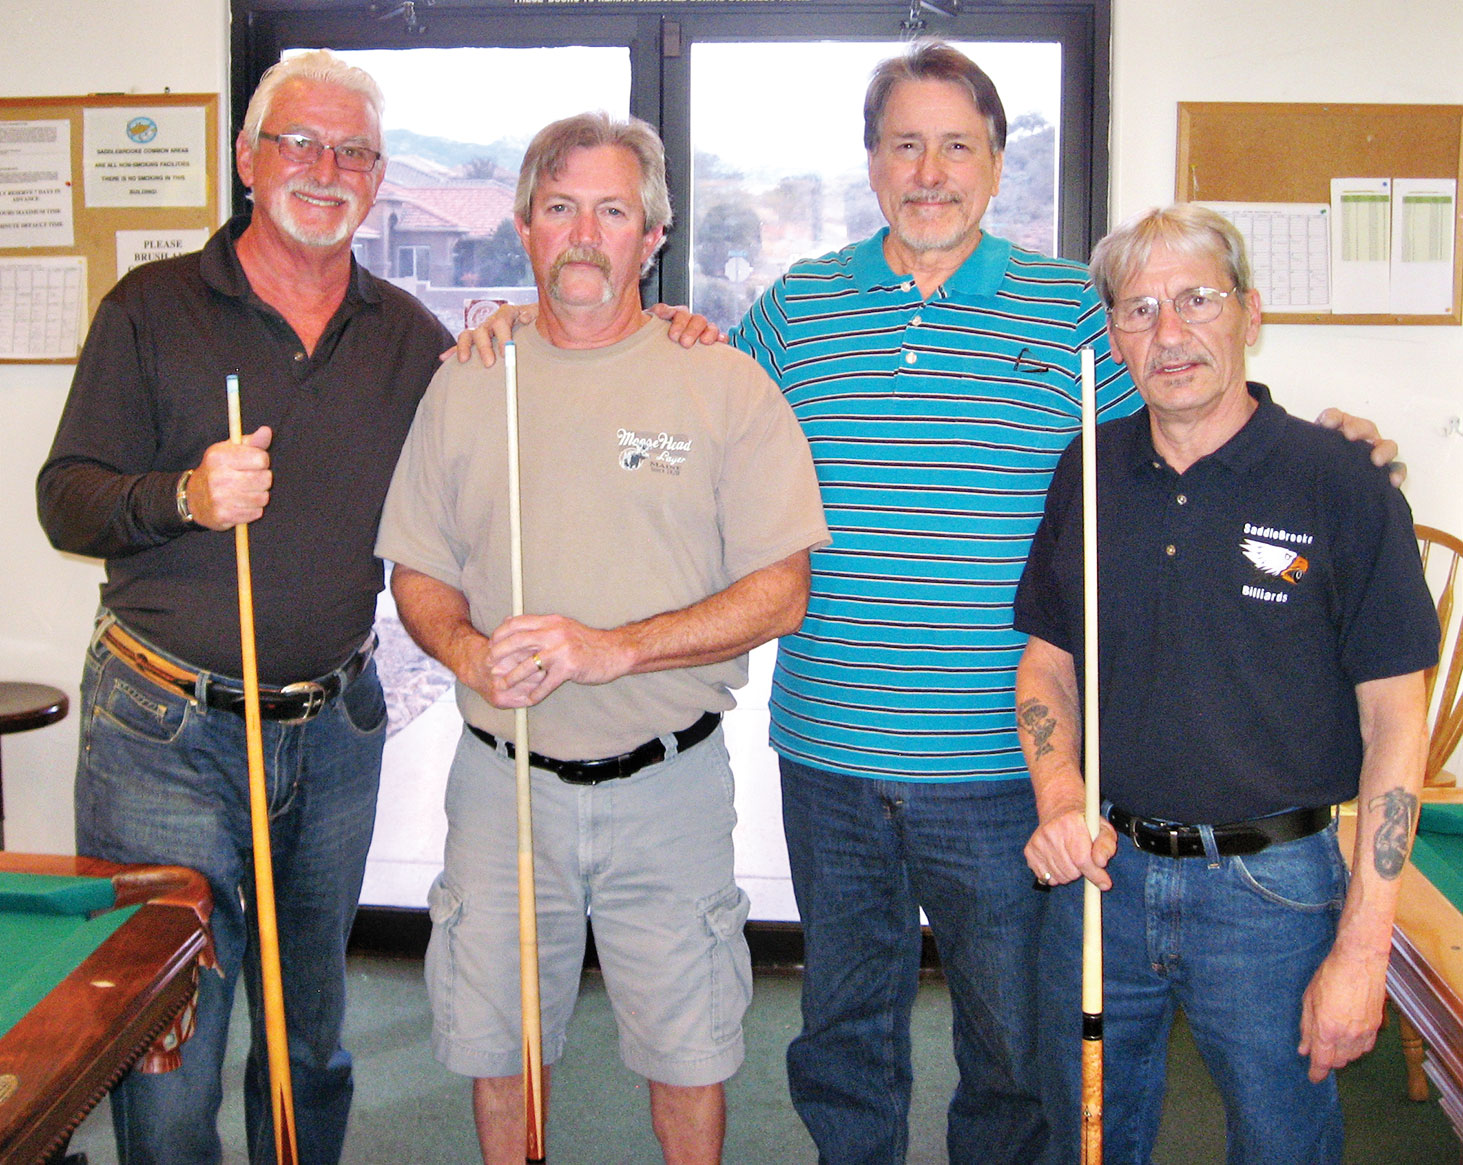 """Left to right: 1st place Terrence Sterling and Dominic """"The Doctor"""" Borland; 2nd place Tom """"Half Jacket"""" Barrett and Joe """"Fast Eddie"""" Giammarino"""